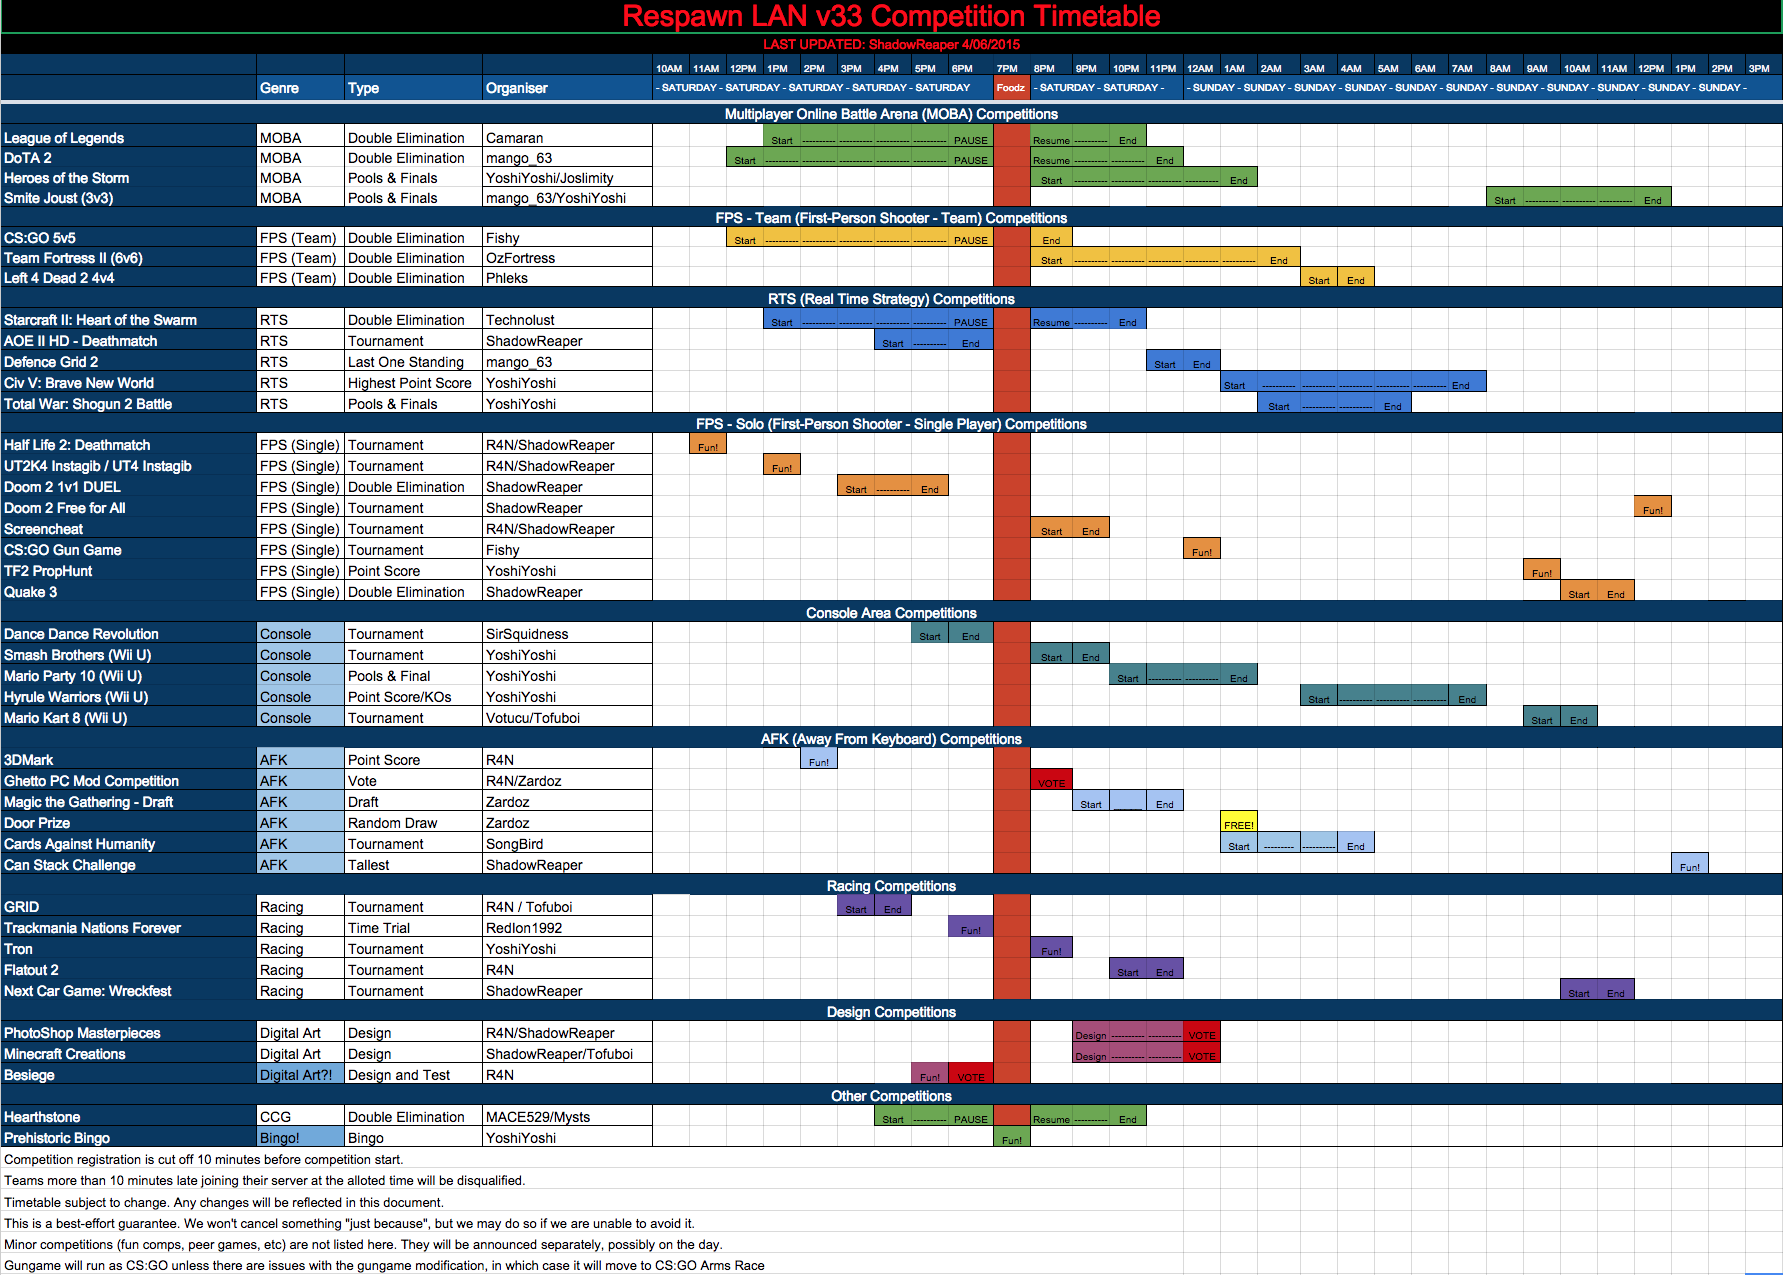 Respawn LAN v33 tournament timetable image